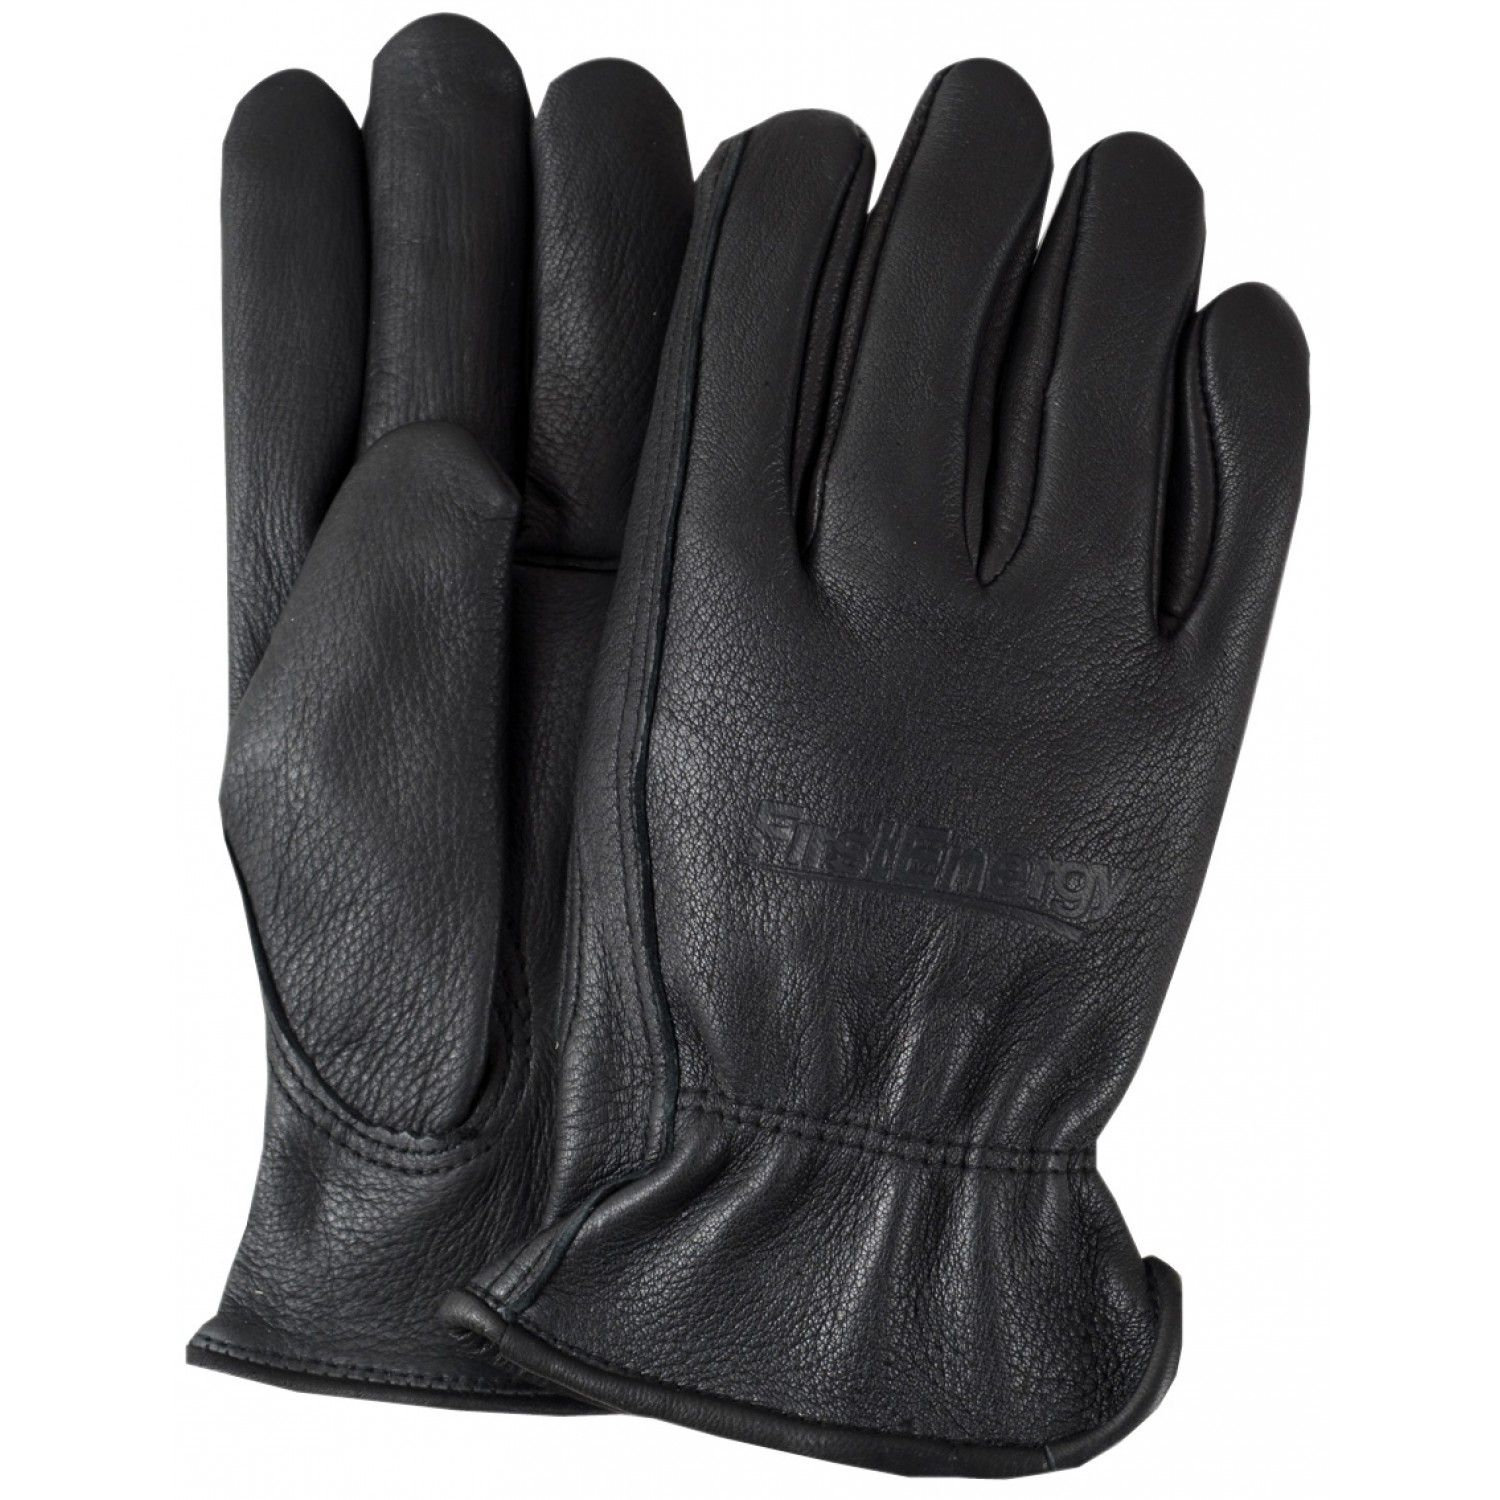 Insulated leather work gloves amazon - Brand Your Logo Into This Premium Grain Black Leather Gloves With Lining